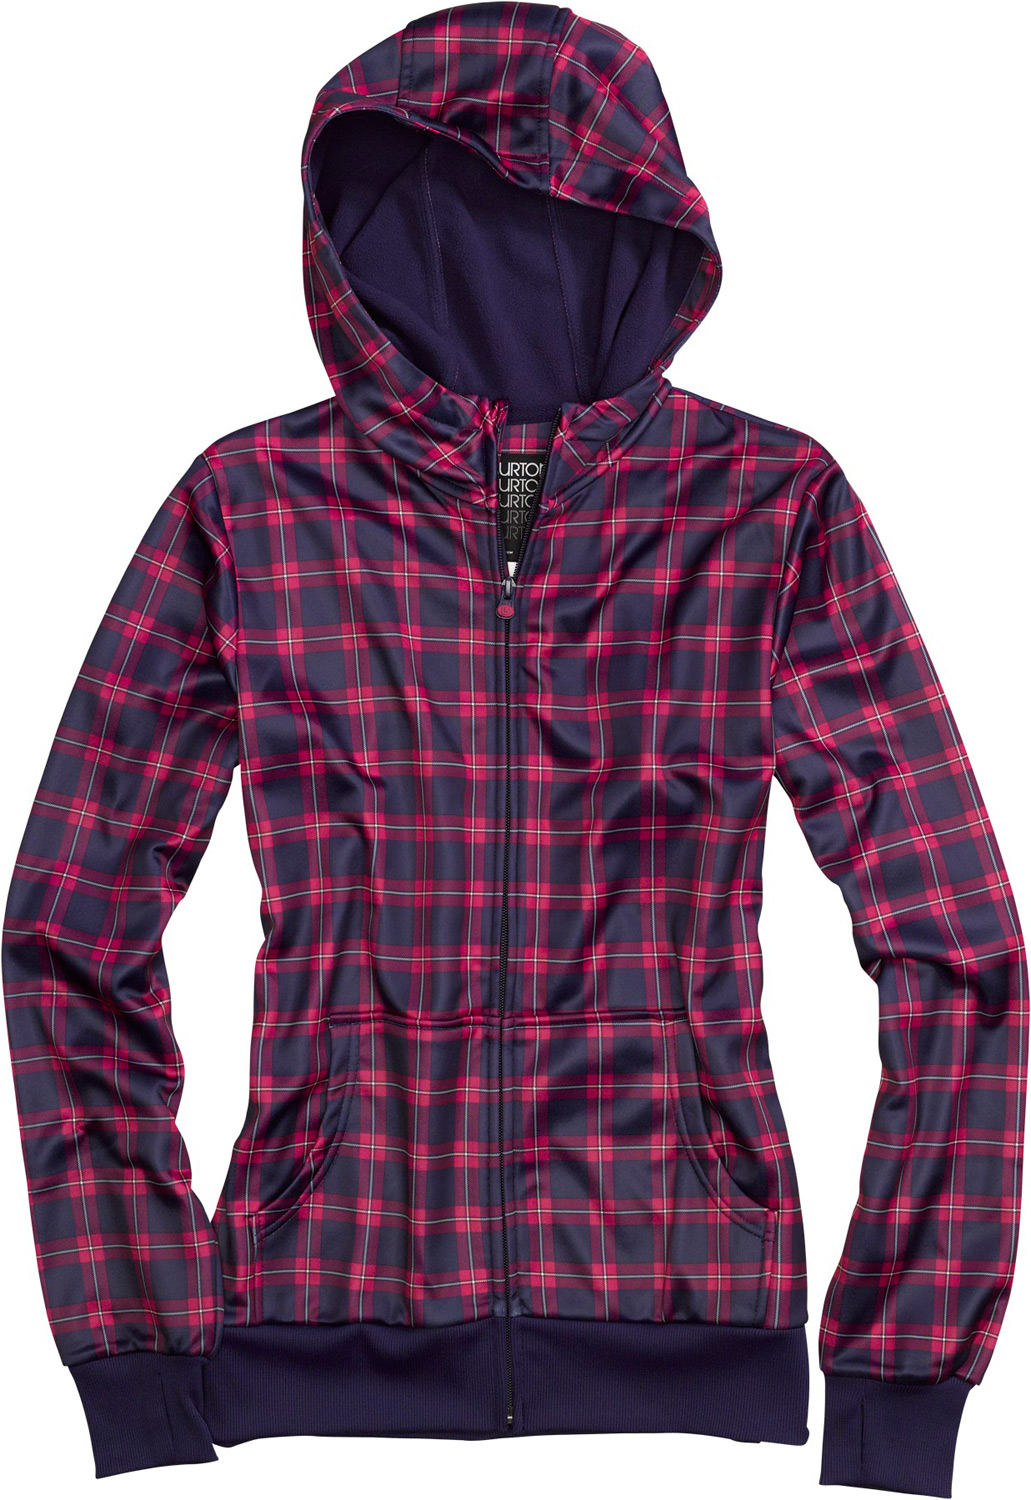 Snowboard Four scoops of fleece with all the sweet toppings-quick-drying heat for mountain or street.Key Features of the Burton Scoop Hoodie: DRYRIDE Thermex Bonded Fleece Fulltime Hood Kangaroo Handwarmer Pockets Sound Pocket with Headphone Cable Port Ribbed Thumbhole Cuffs and Hem - $51.95